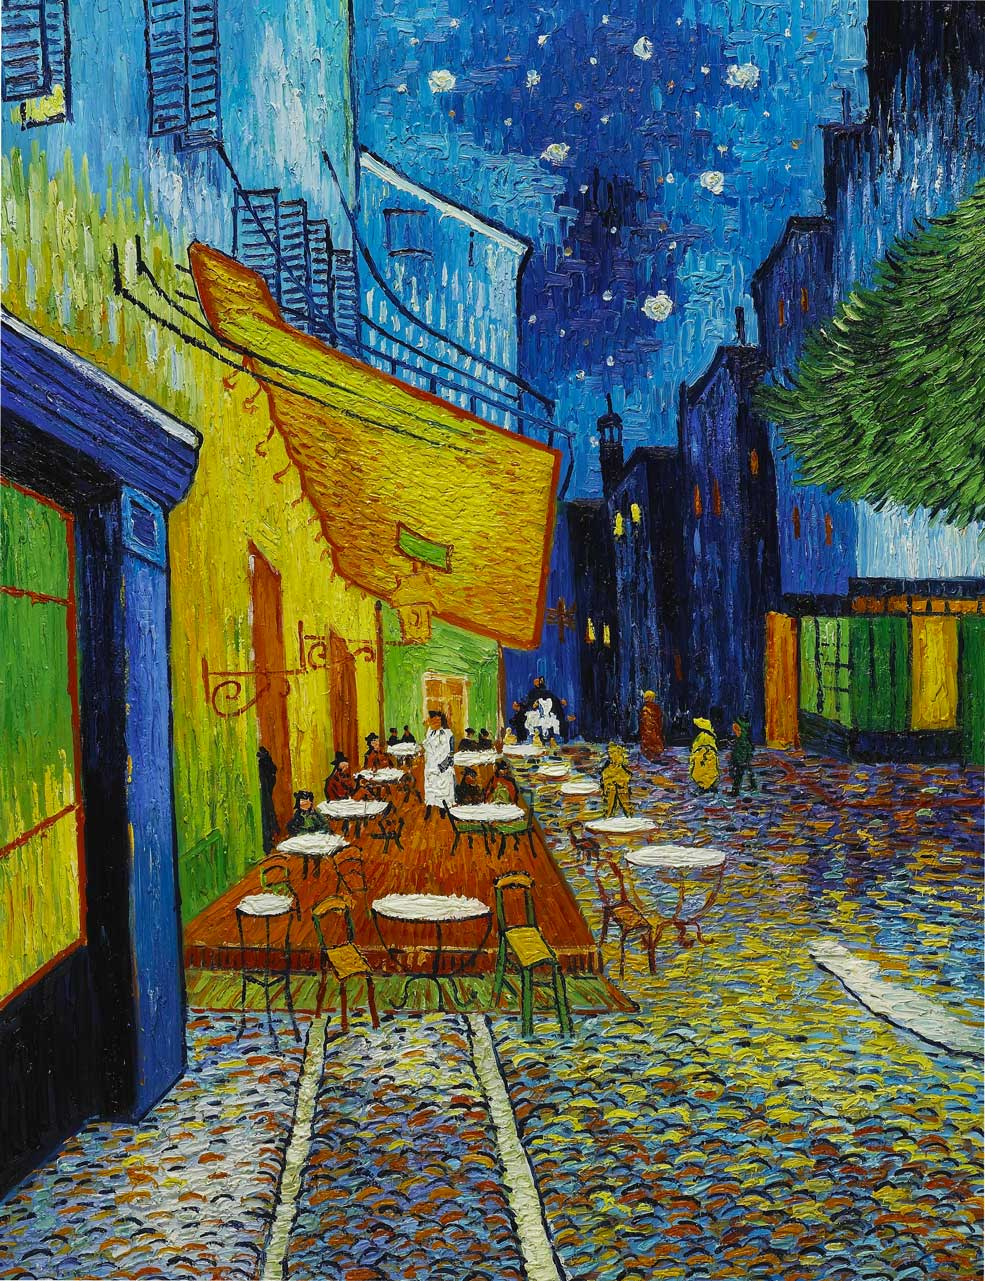 Cafe terrace at night vincent van gogh sky image lab for Terrace night